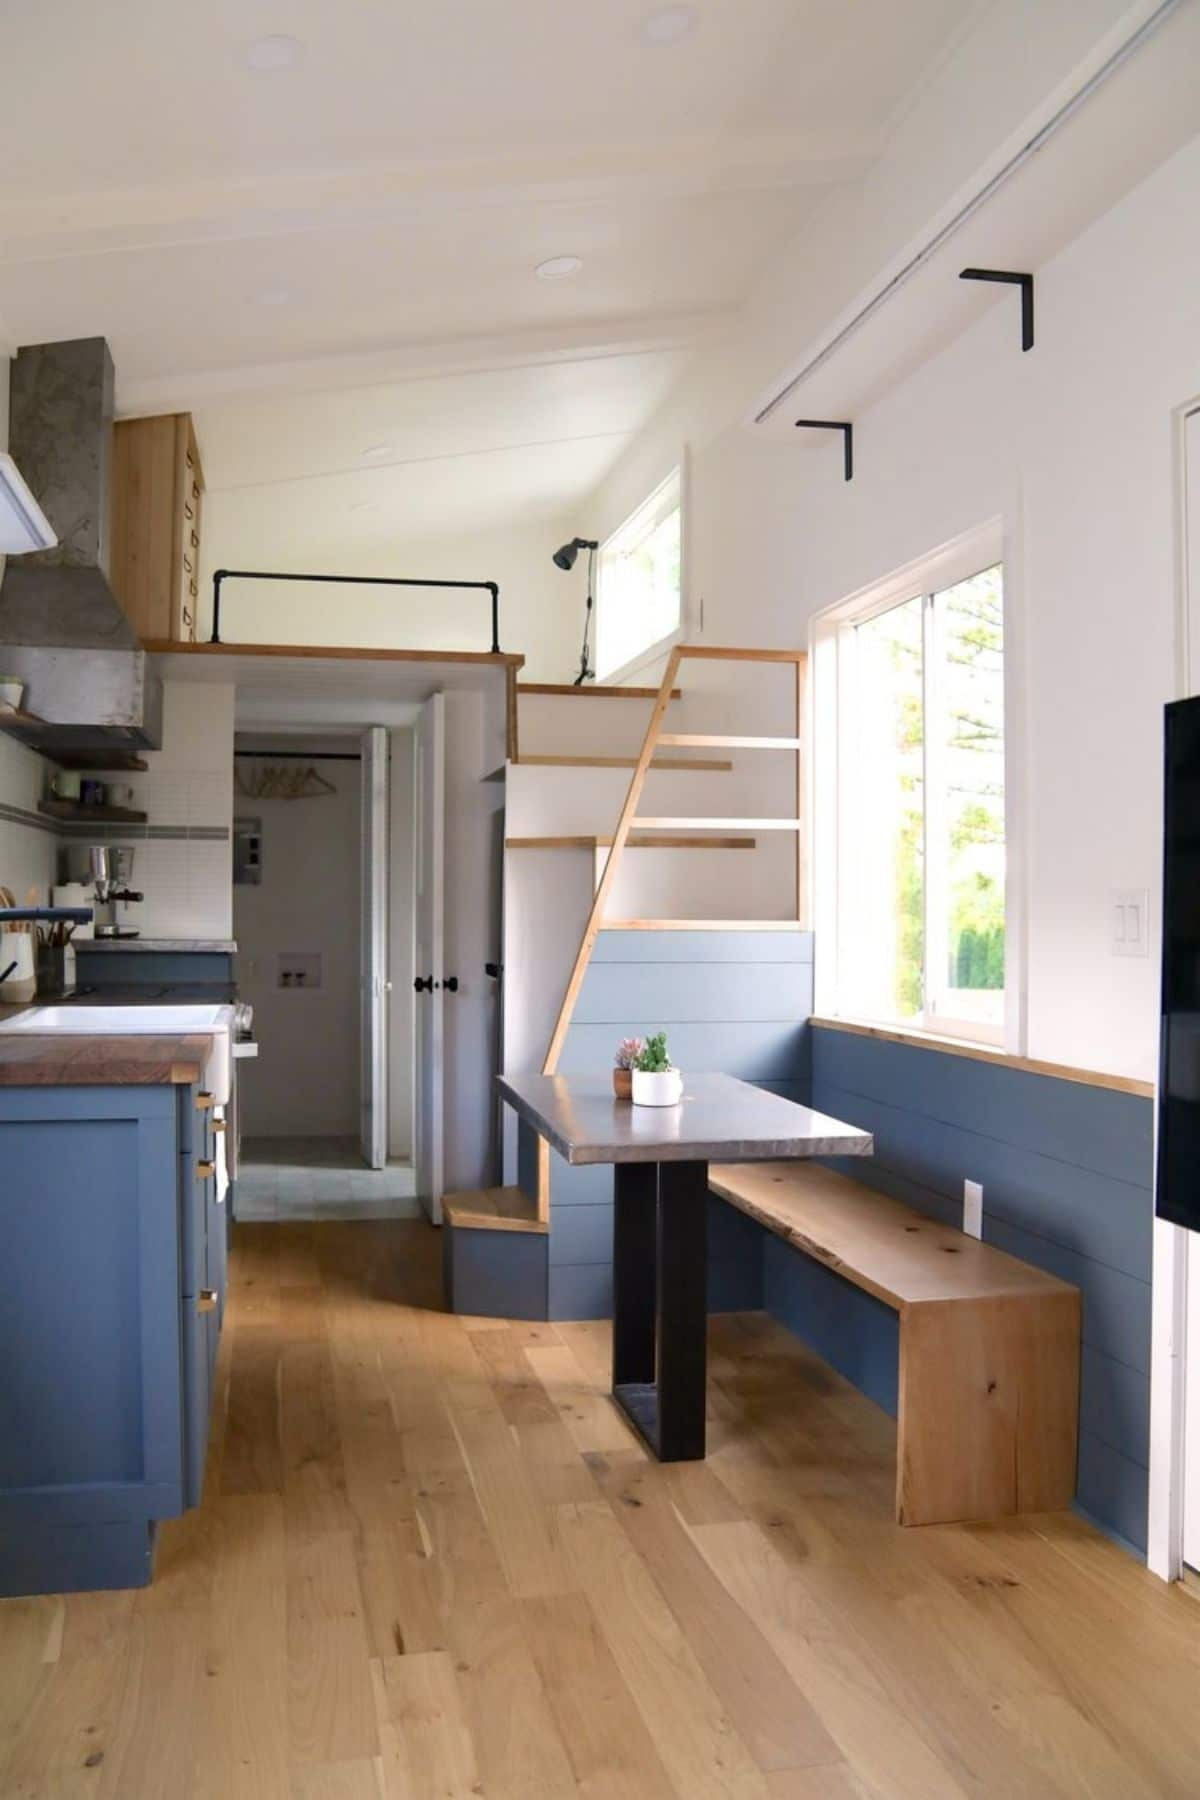 kitchen dining booth between door and stairs with blue cabinets and background